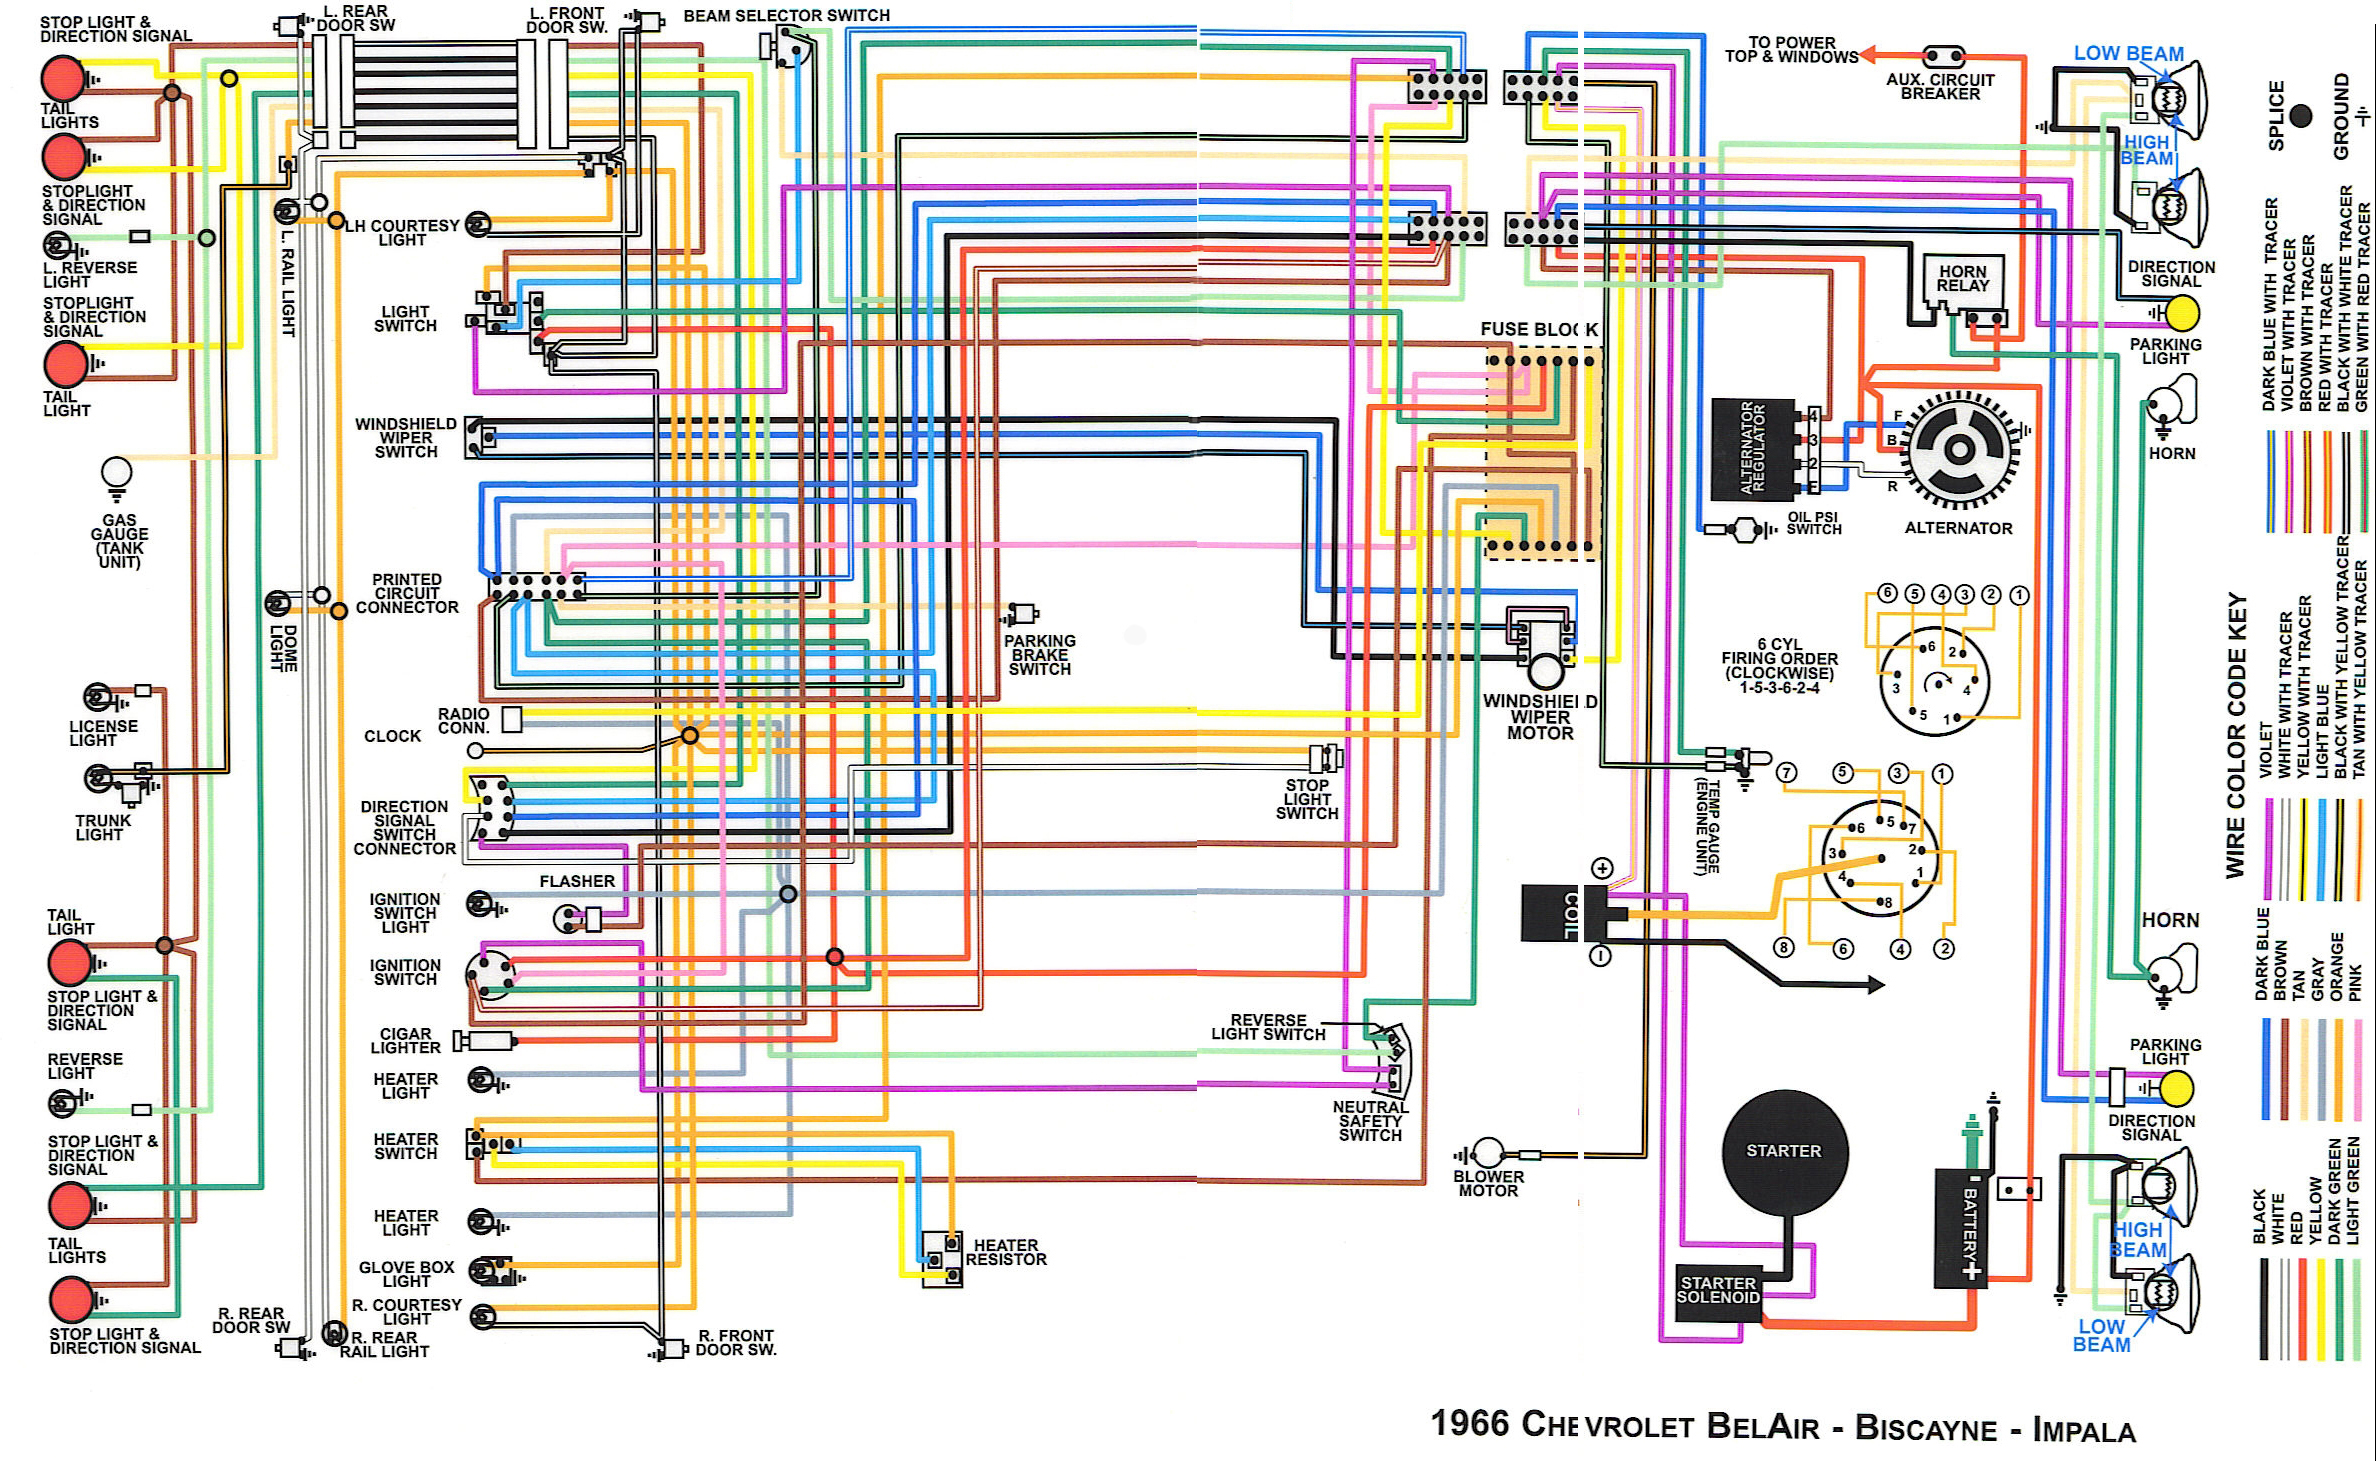 Wiring Diagram 1965 Chevy Impala | Wiring Diagram on 2006 chevy impala recalls, 2005 chevy colorado fuse diagram, 2006 chevy trailblazer fuse diagram, 2006 chevy impala parking brake, 2006 chevy impala motor, 2006 chevy impala oxygen sensors, 2006 chevy impala alternator, 1995 chevy impala fuse diagram, 2006 chevy impala heater, 2006 chevy impala thermostat, 2006 chevy cobalt fuse box location, 2006 chevy impala remote key, 06 impala fuse diagram, 2006 impala fuse box diagram, 2006 chevy avalanche fuse diagram, 2006 impala fuse panel wiring diagram, 2006 chevy impala door, 2006 chevy impala radio, 2006 chevy silverado 2500hd fuse diagram, 2003 impala fuse box diagram,